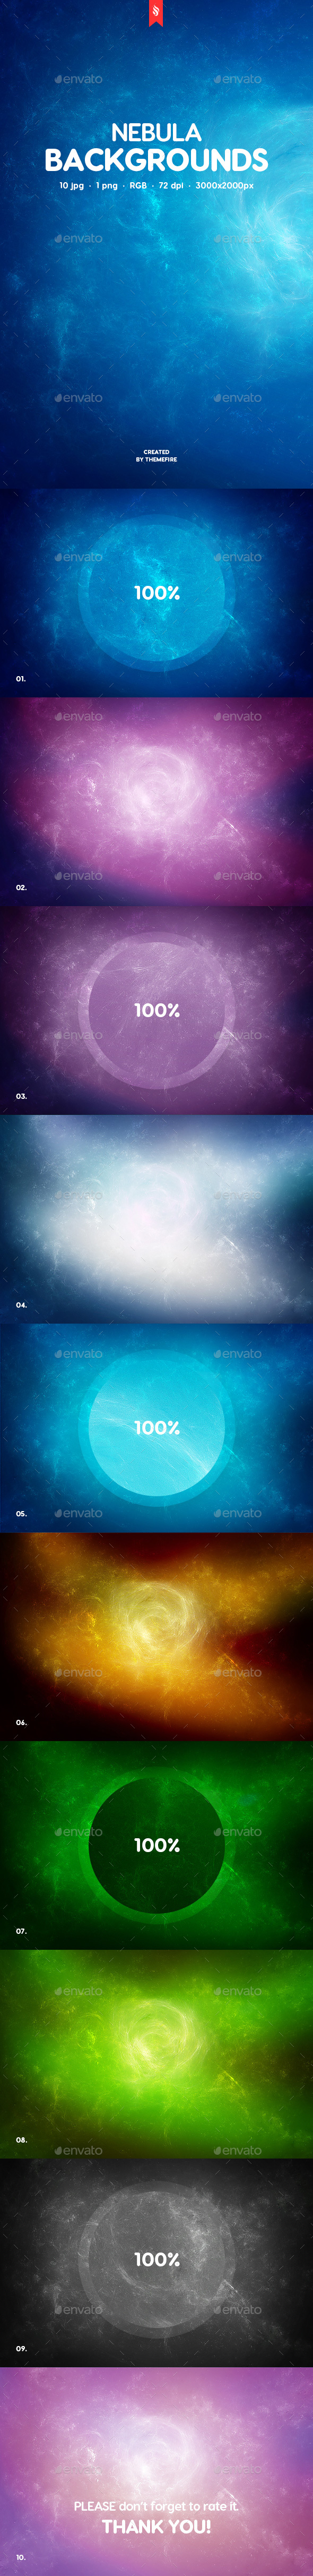 Nebula Backgrounds - Backgrounds Graphics